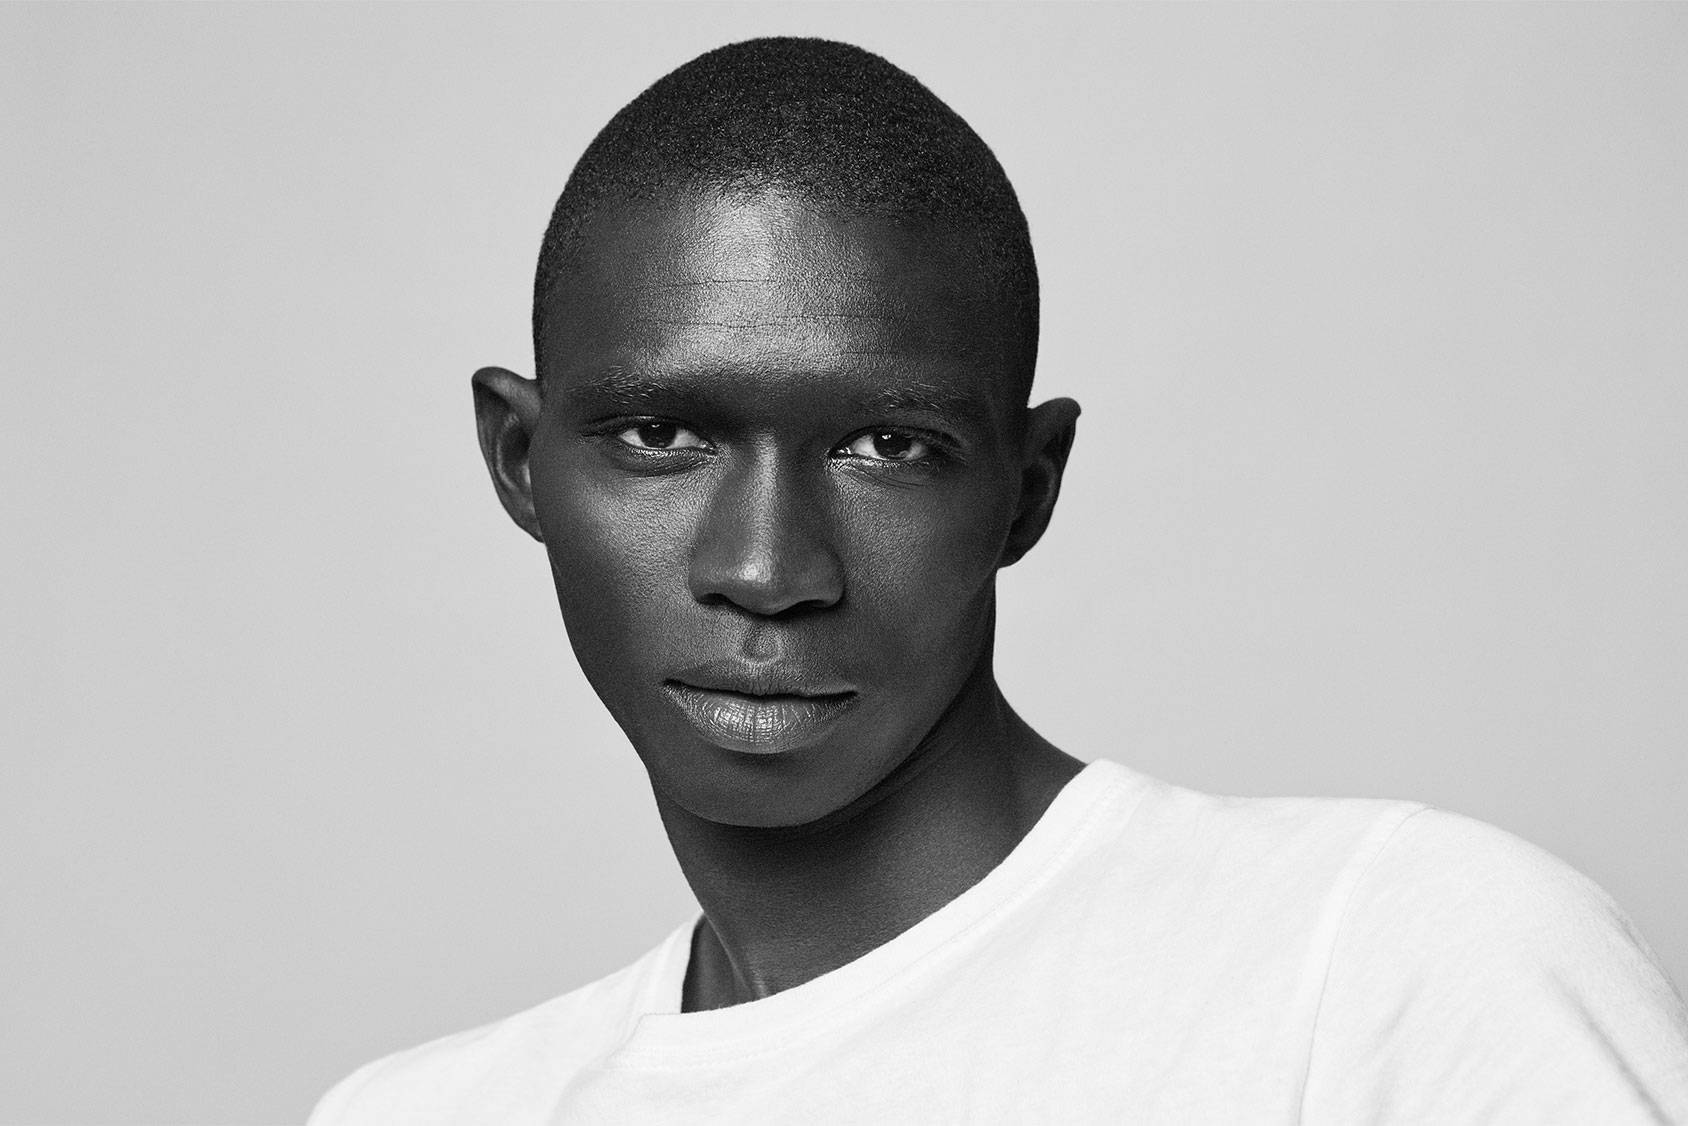 Fernando Cabral busts a male model myth